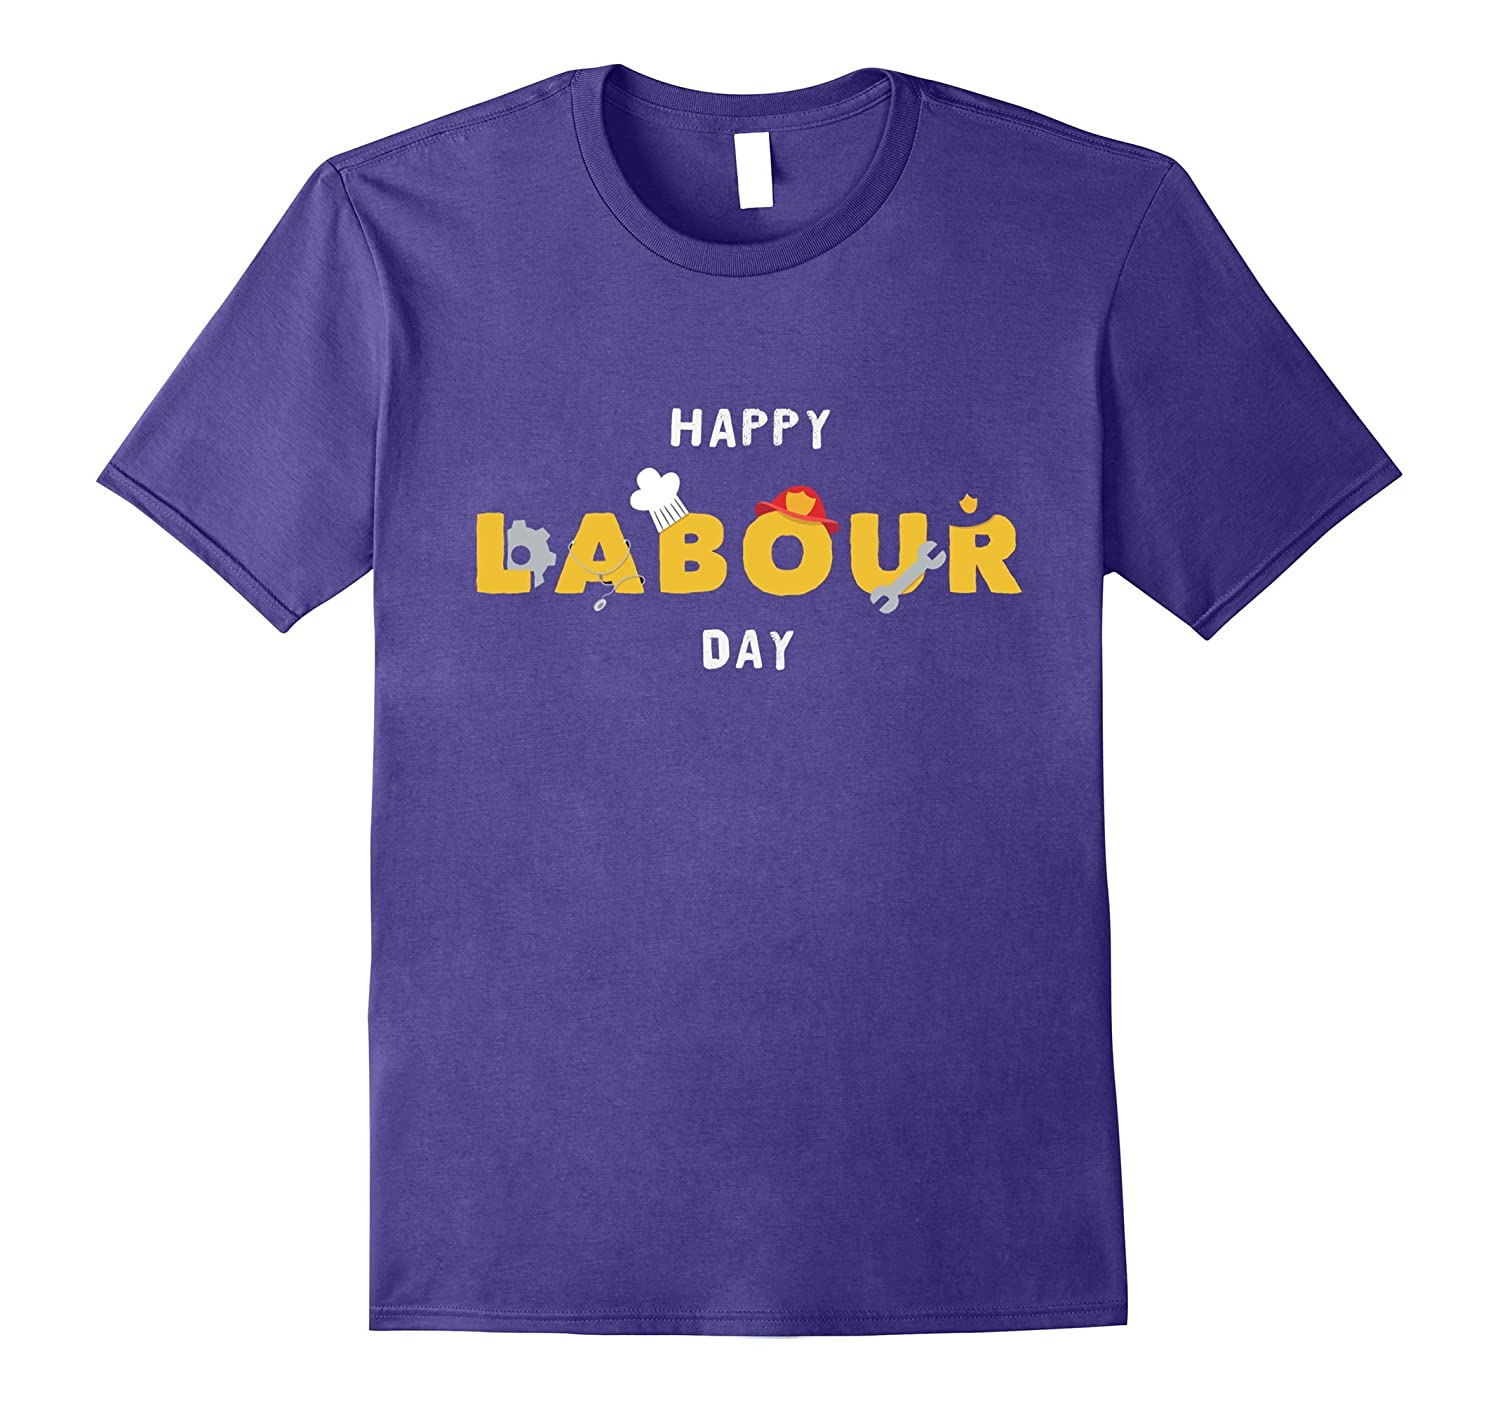 Happy Labour Day 2017 T Shirt For Workers-BN